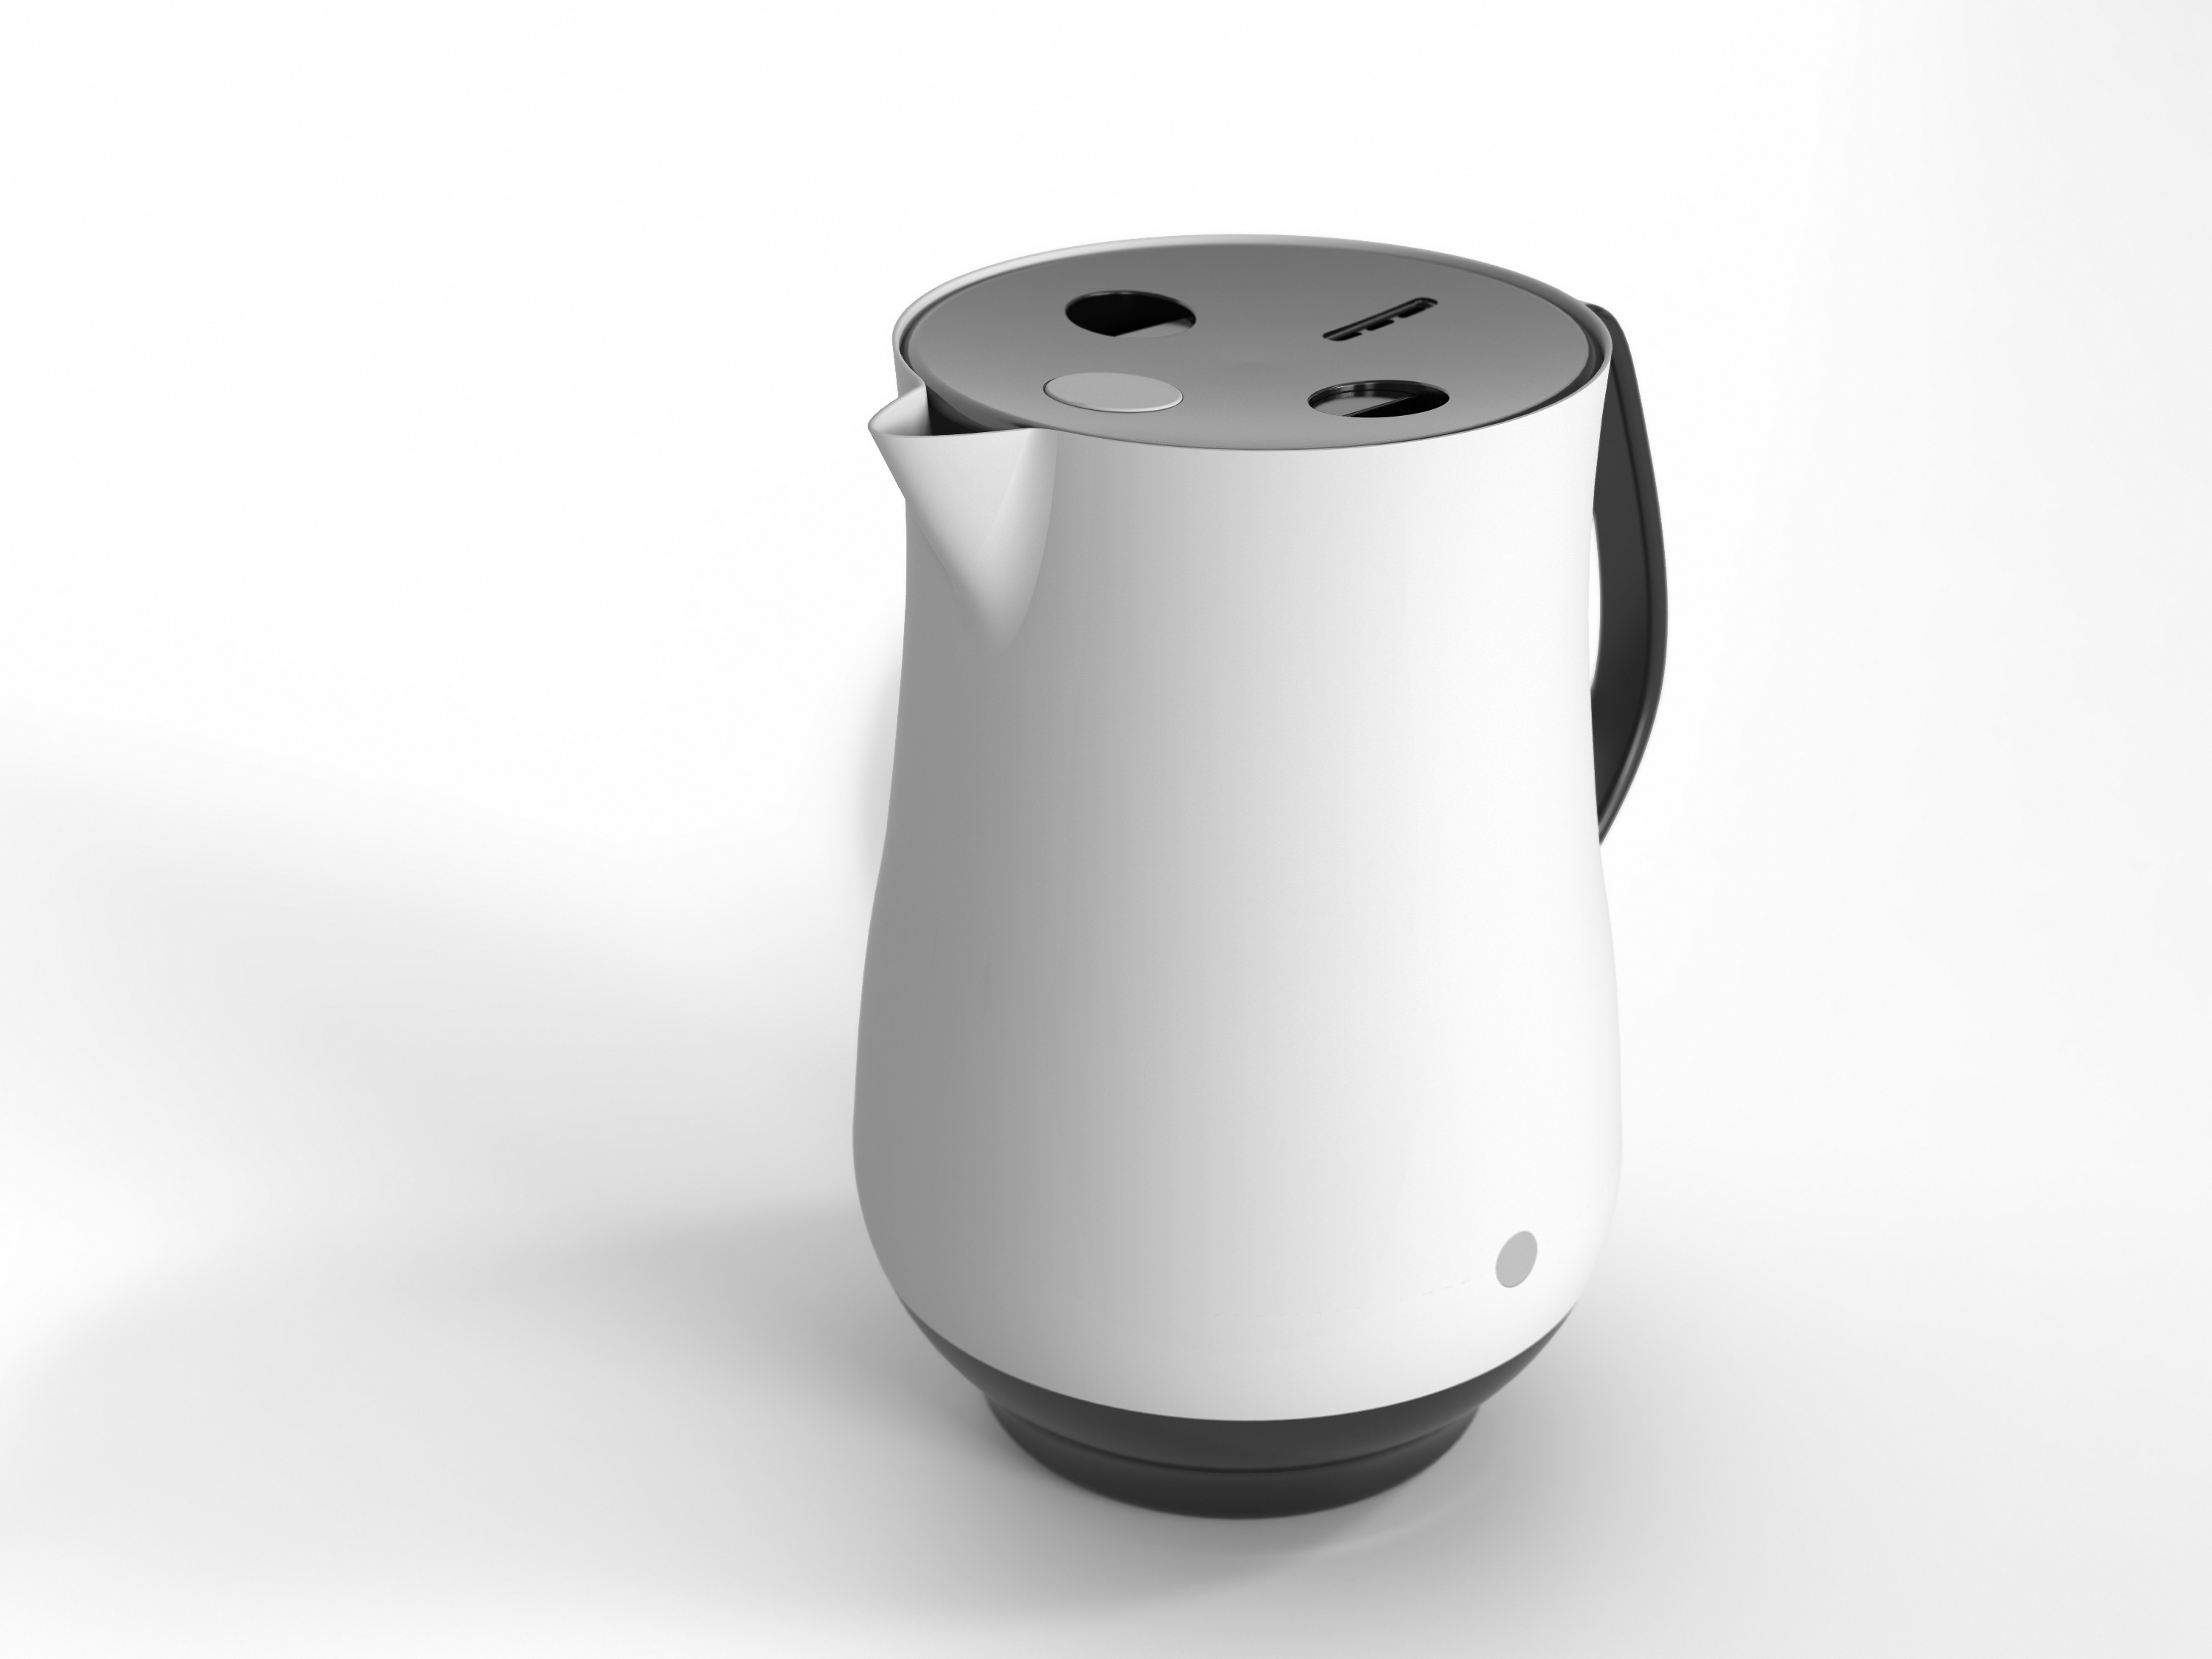 Electric-kettle-45W.jpg